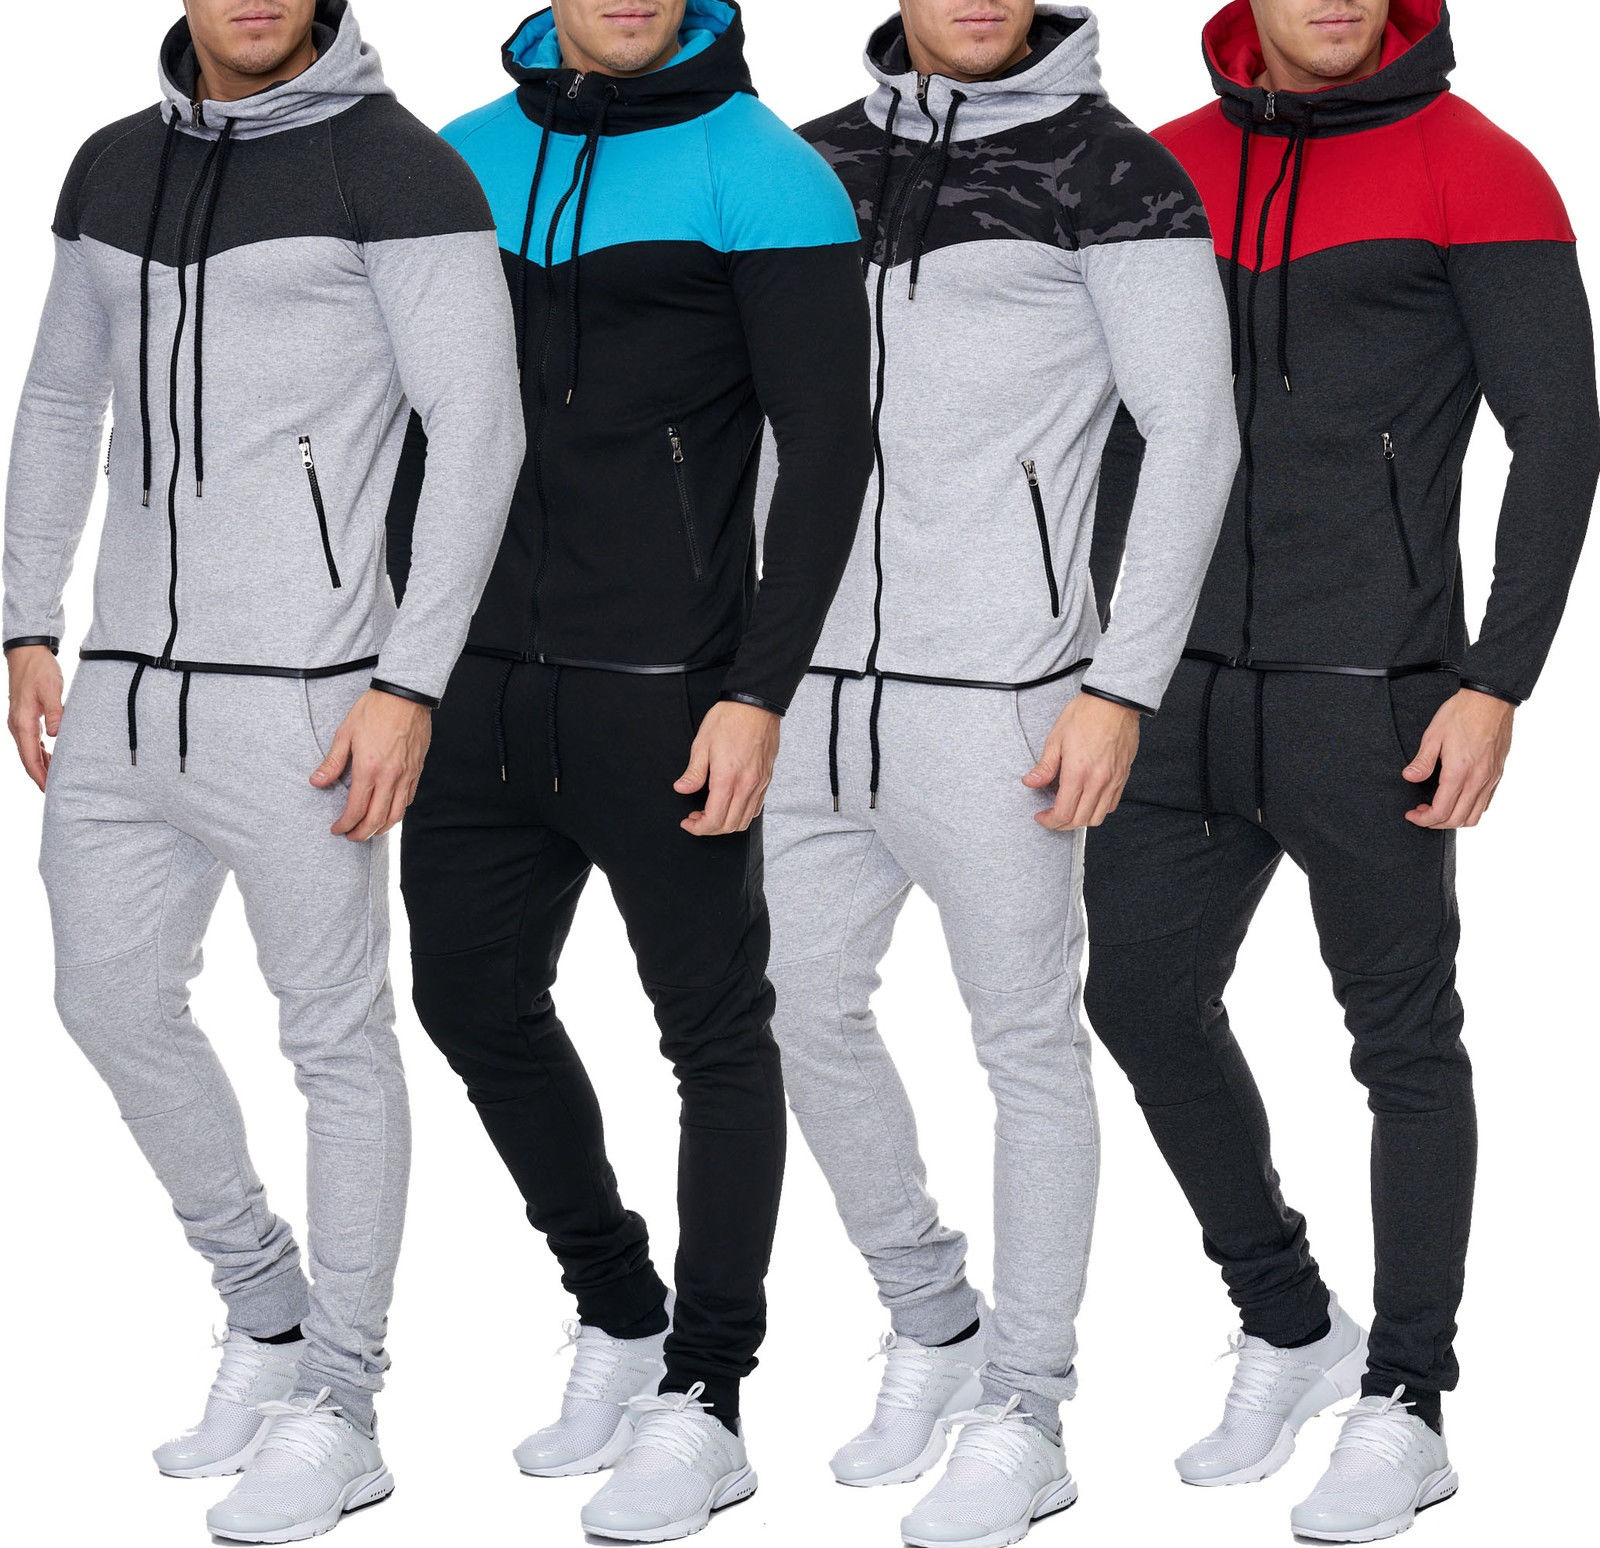 ZOGAA Mens Track Suit Casual 2 Piece Set Fashion Color Block Hooded Sportswear Sweatsuit For Male Survetement Men Sportsuit